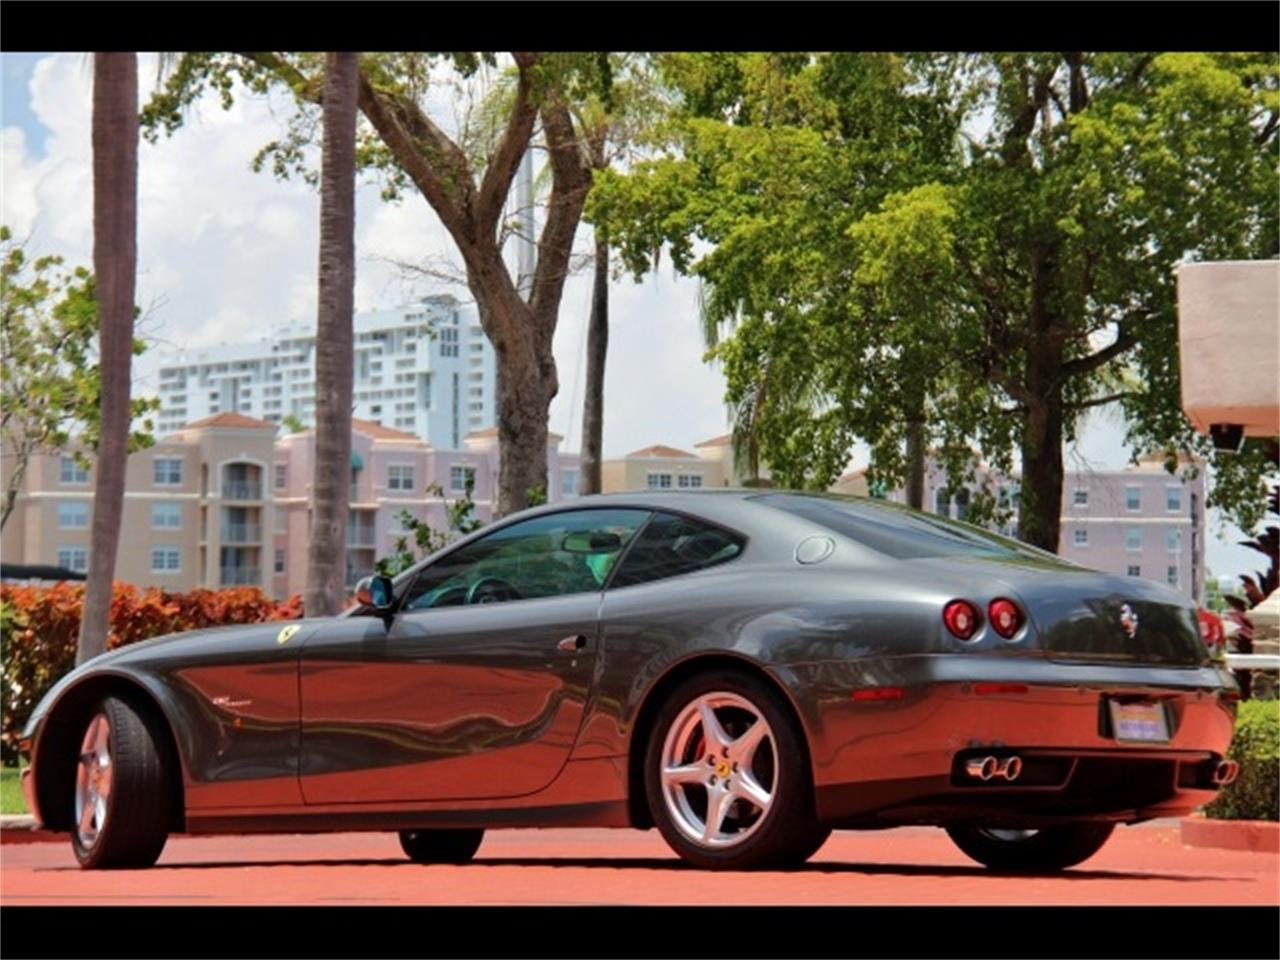 Cars For Sale Miami Beach: 2006 Ferrari 612 Scaglietti For Sale